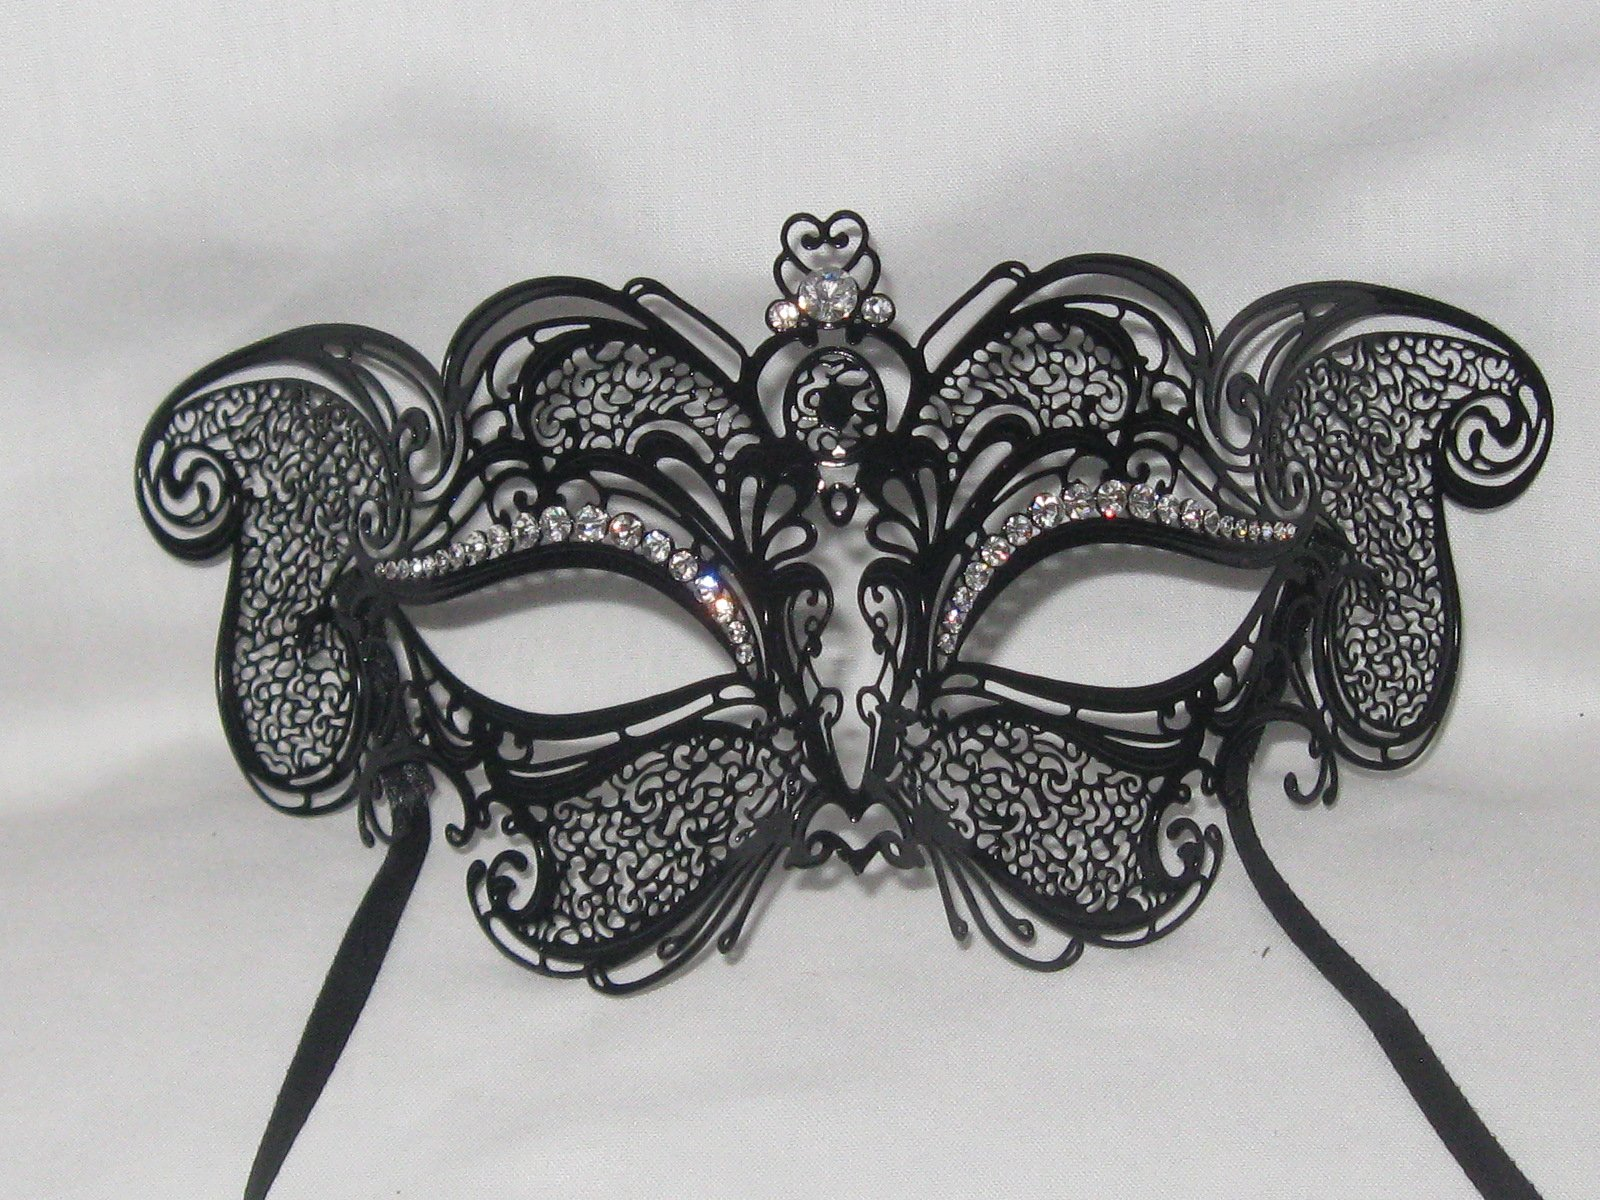 Black Cat Laser Cut Metal Venetian Masquerade Mask